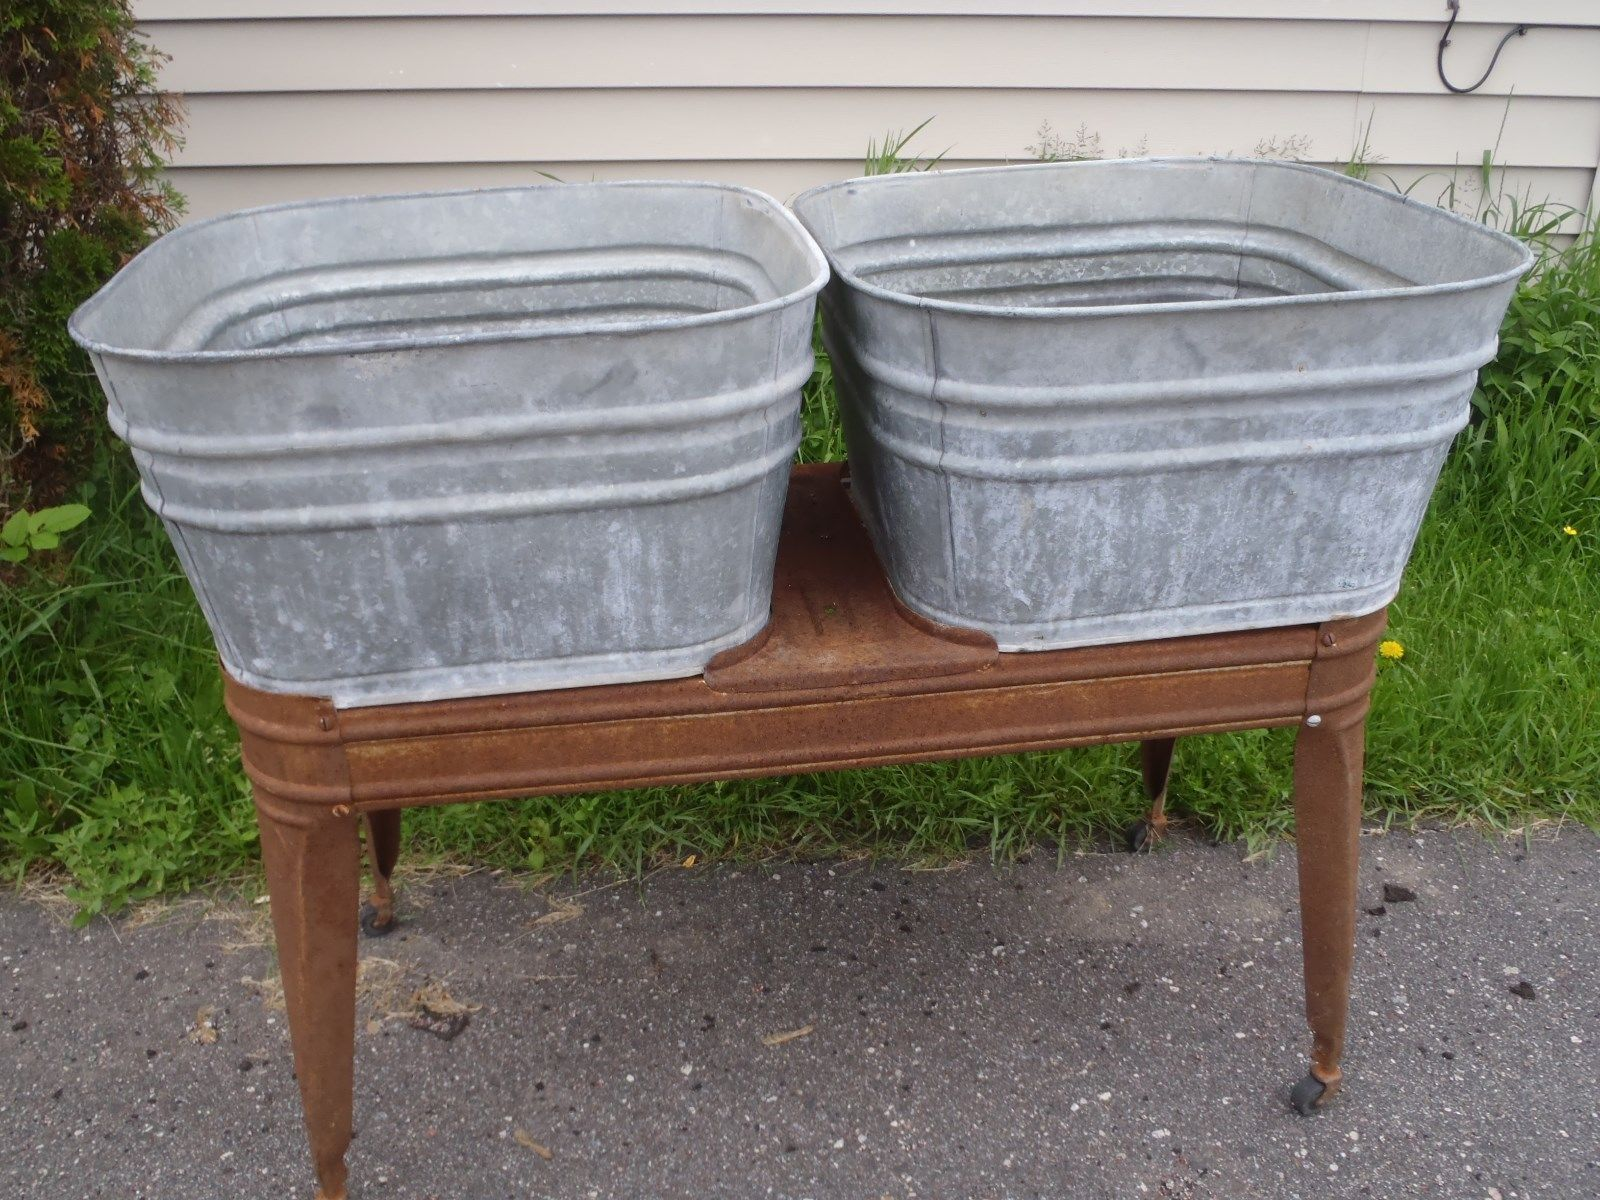 Vintage Wheeling Galvanized Steel Double Wash Tubs Planter Flower Pot Home Sink Galvanized Bathtub Bathtubs For Sale Wash Tubs